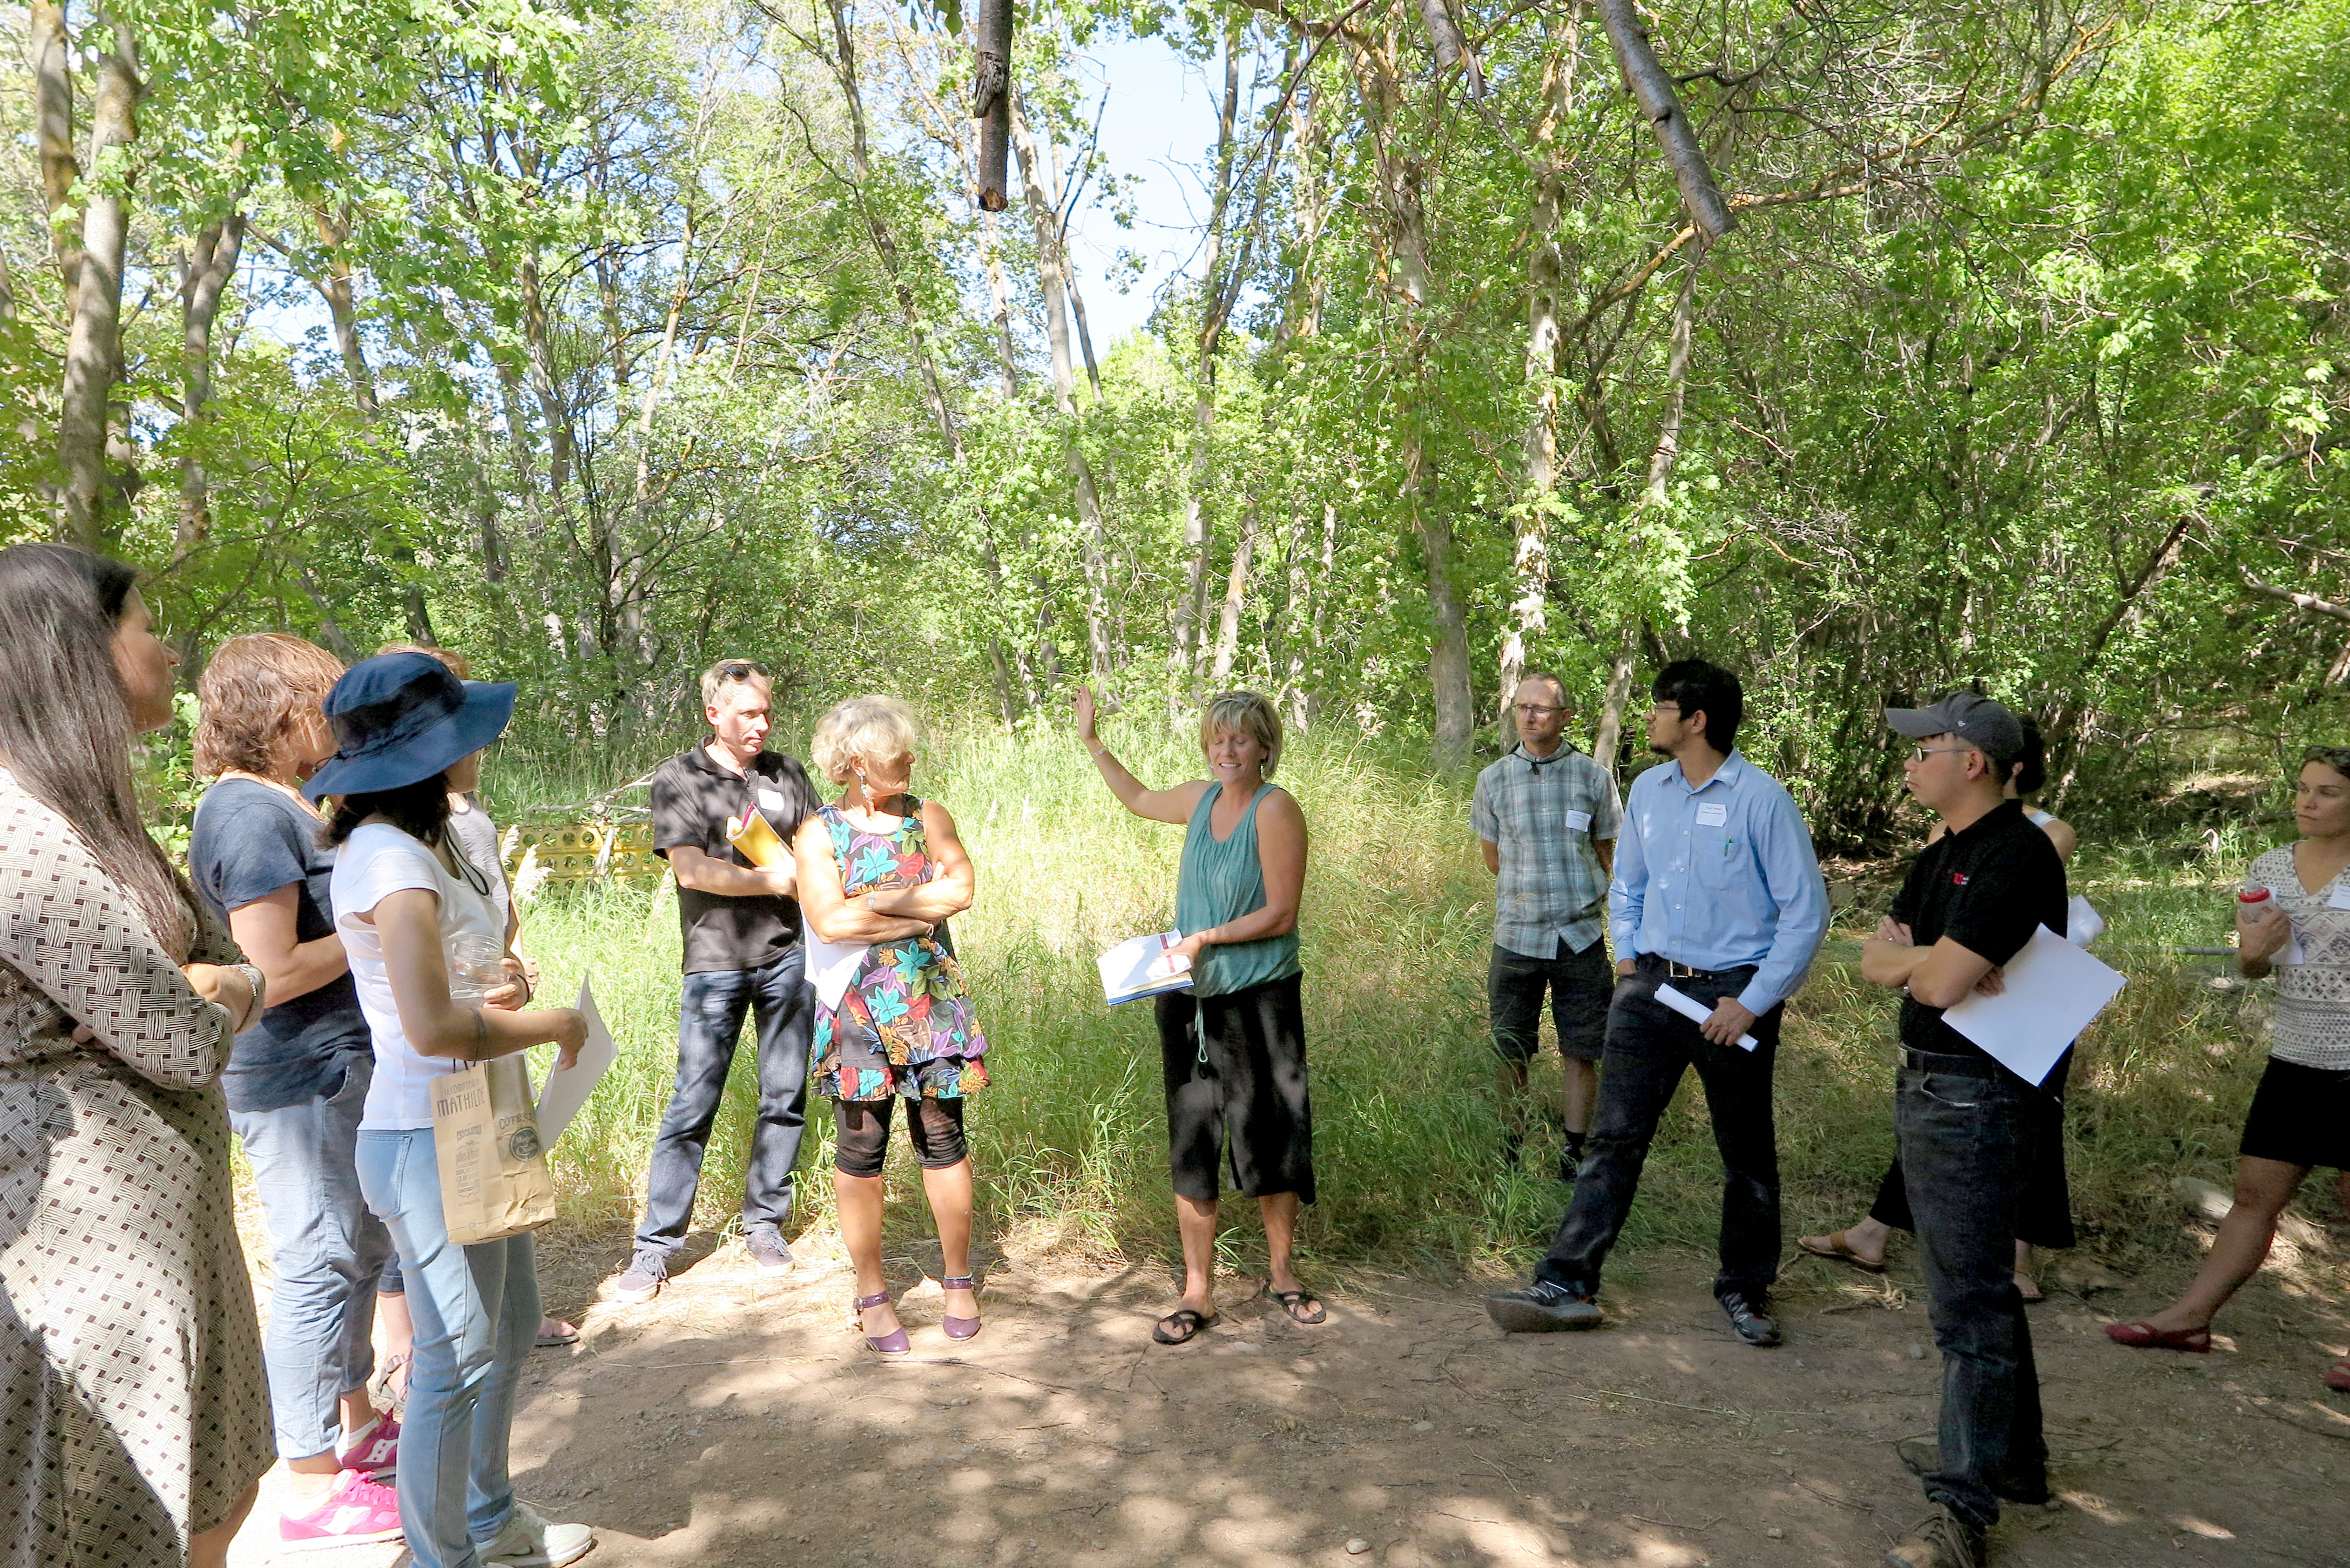 A group of University of Utah faculty standing in a circle discussing sustainability topics surrounded by greenery.